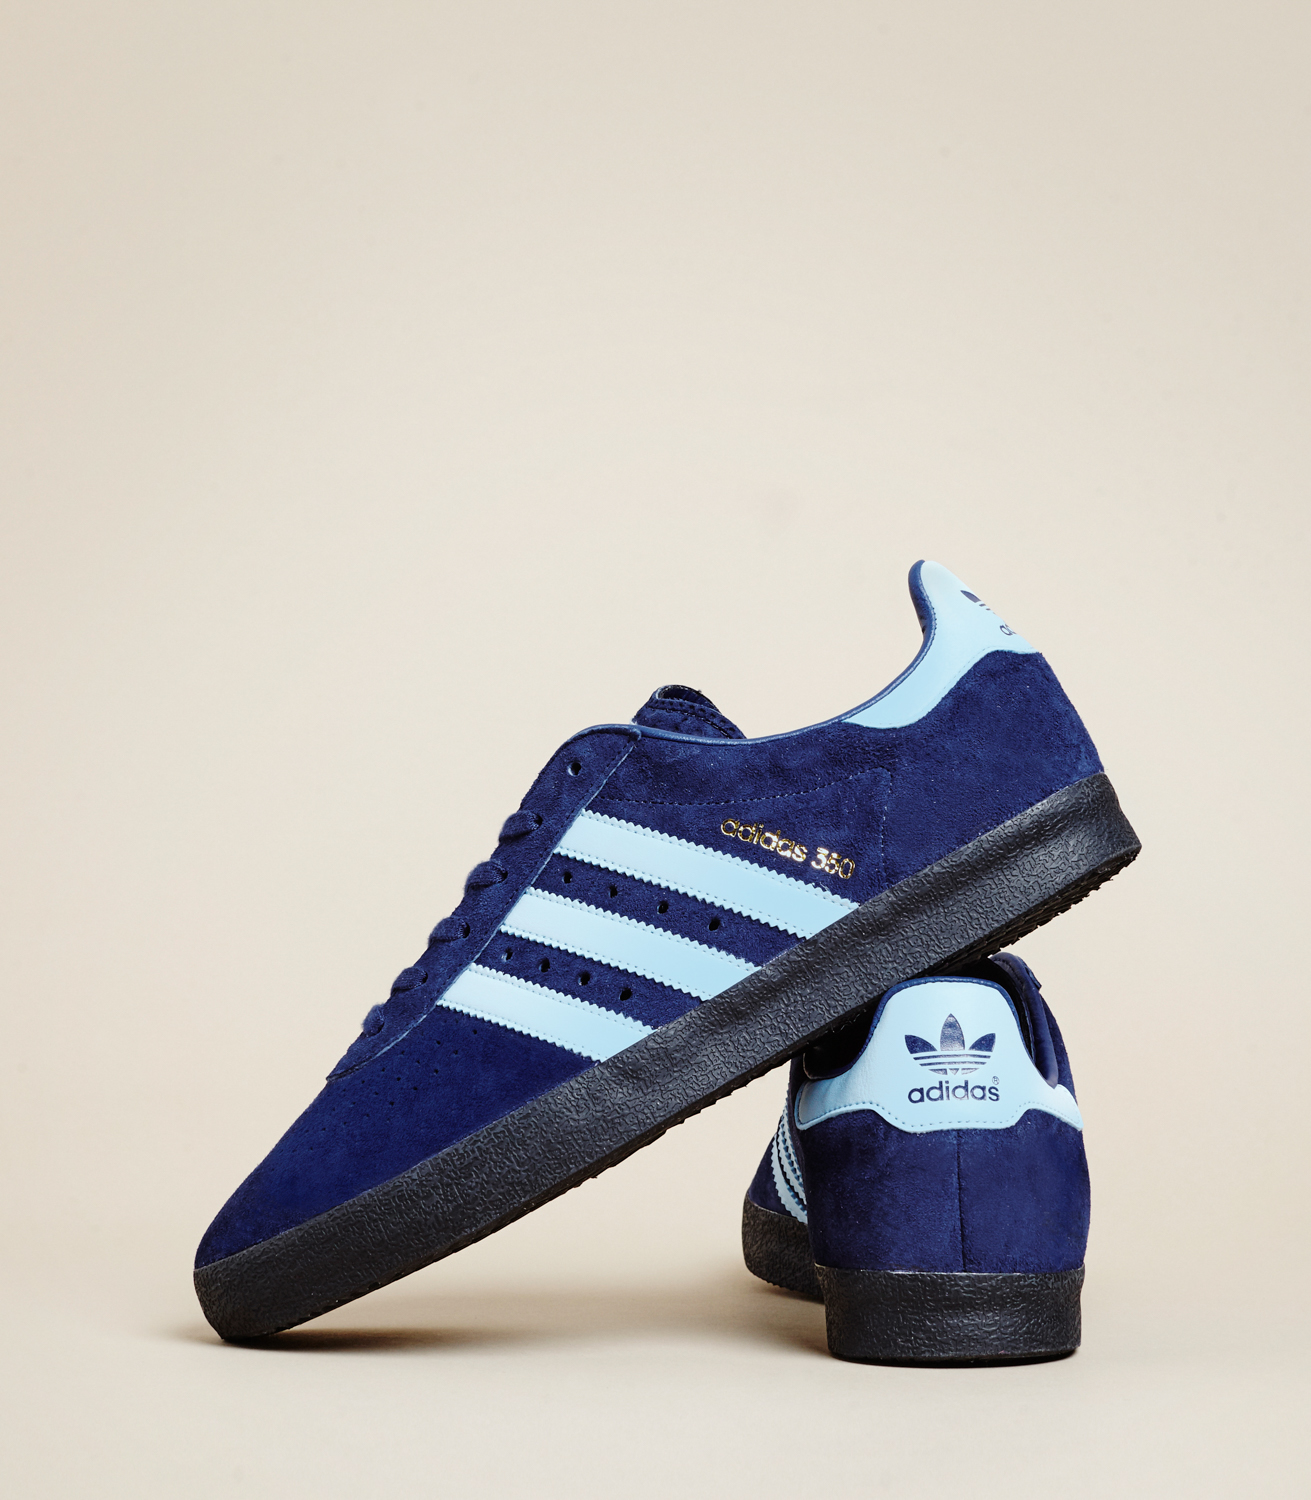 0cd7e8ee3 adidas Originals Archive 350 Suede - size  - Proper Magazine